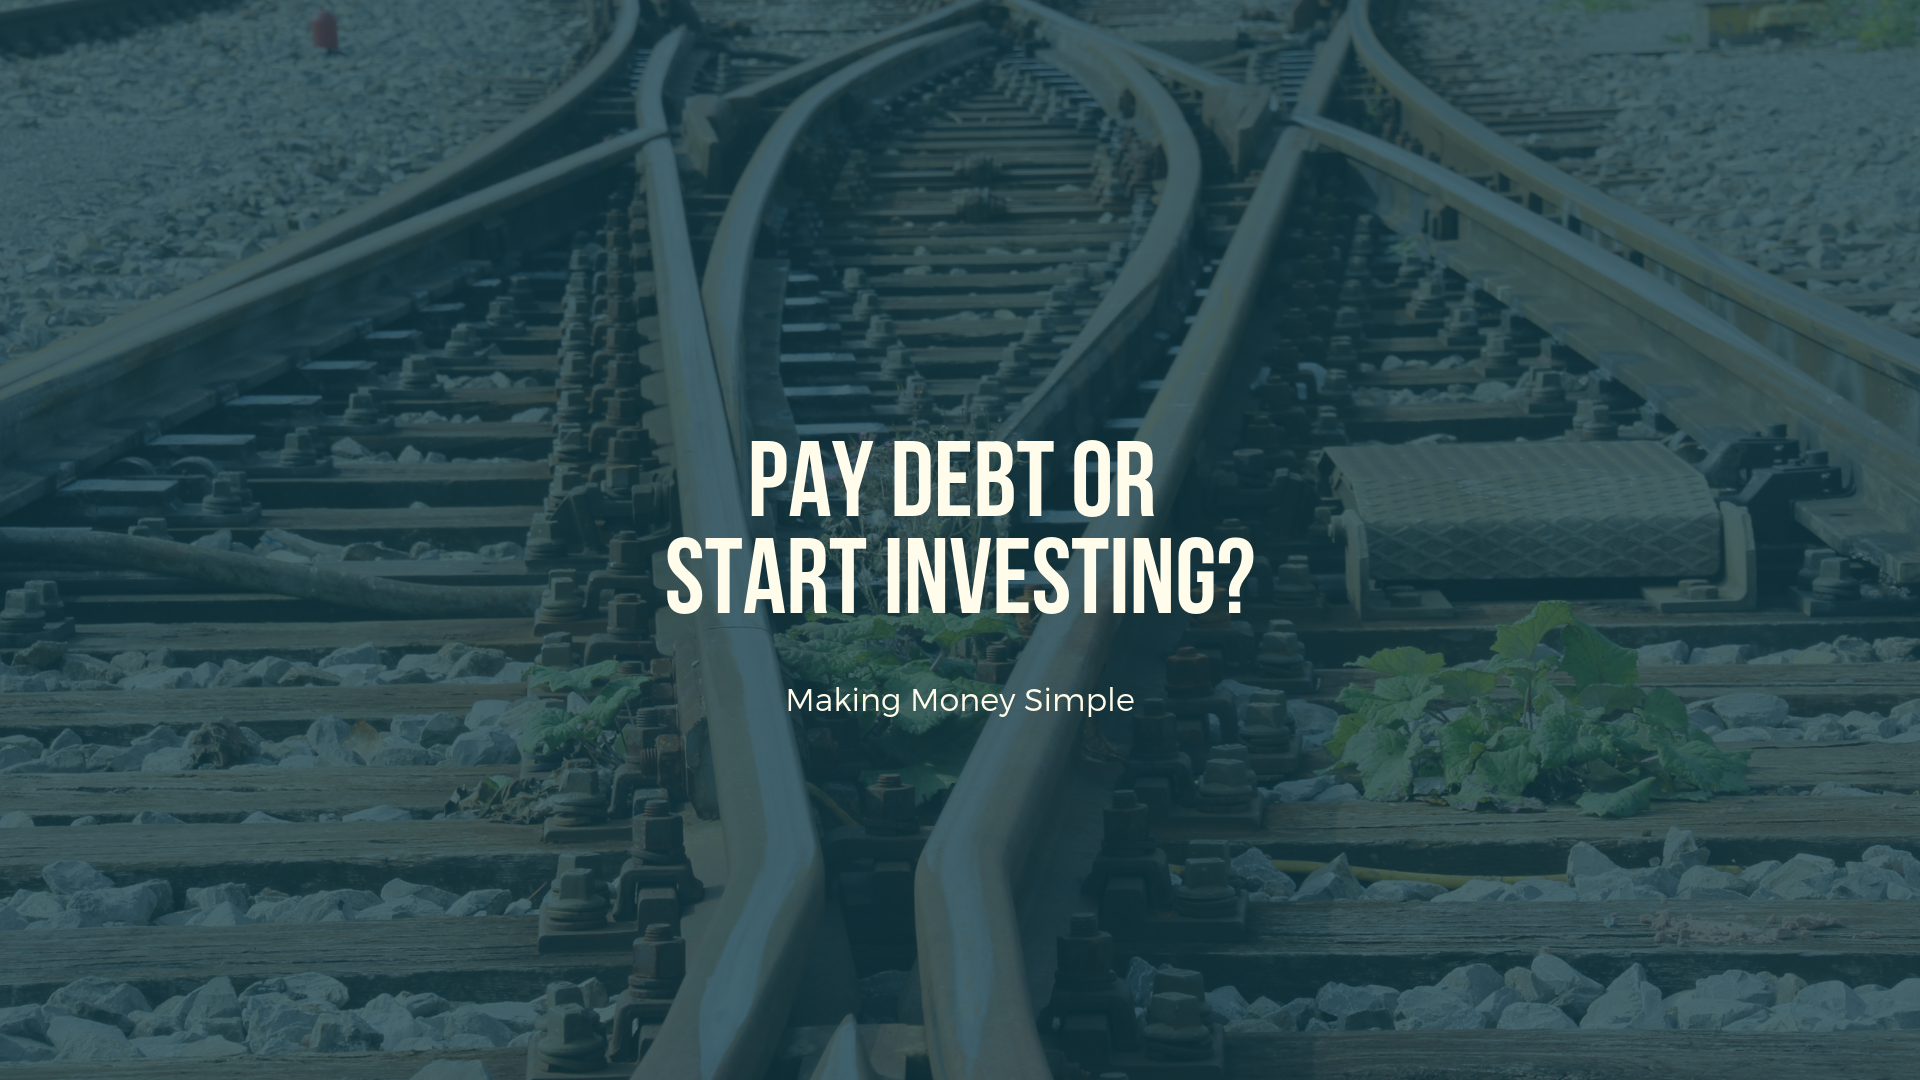 Pay Debt or Start Investing?